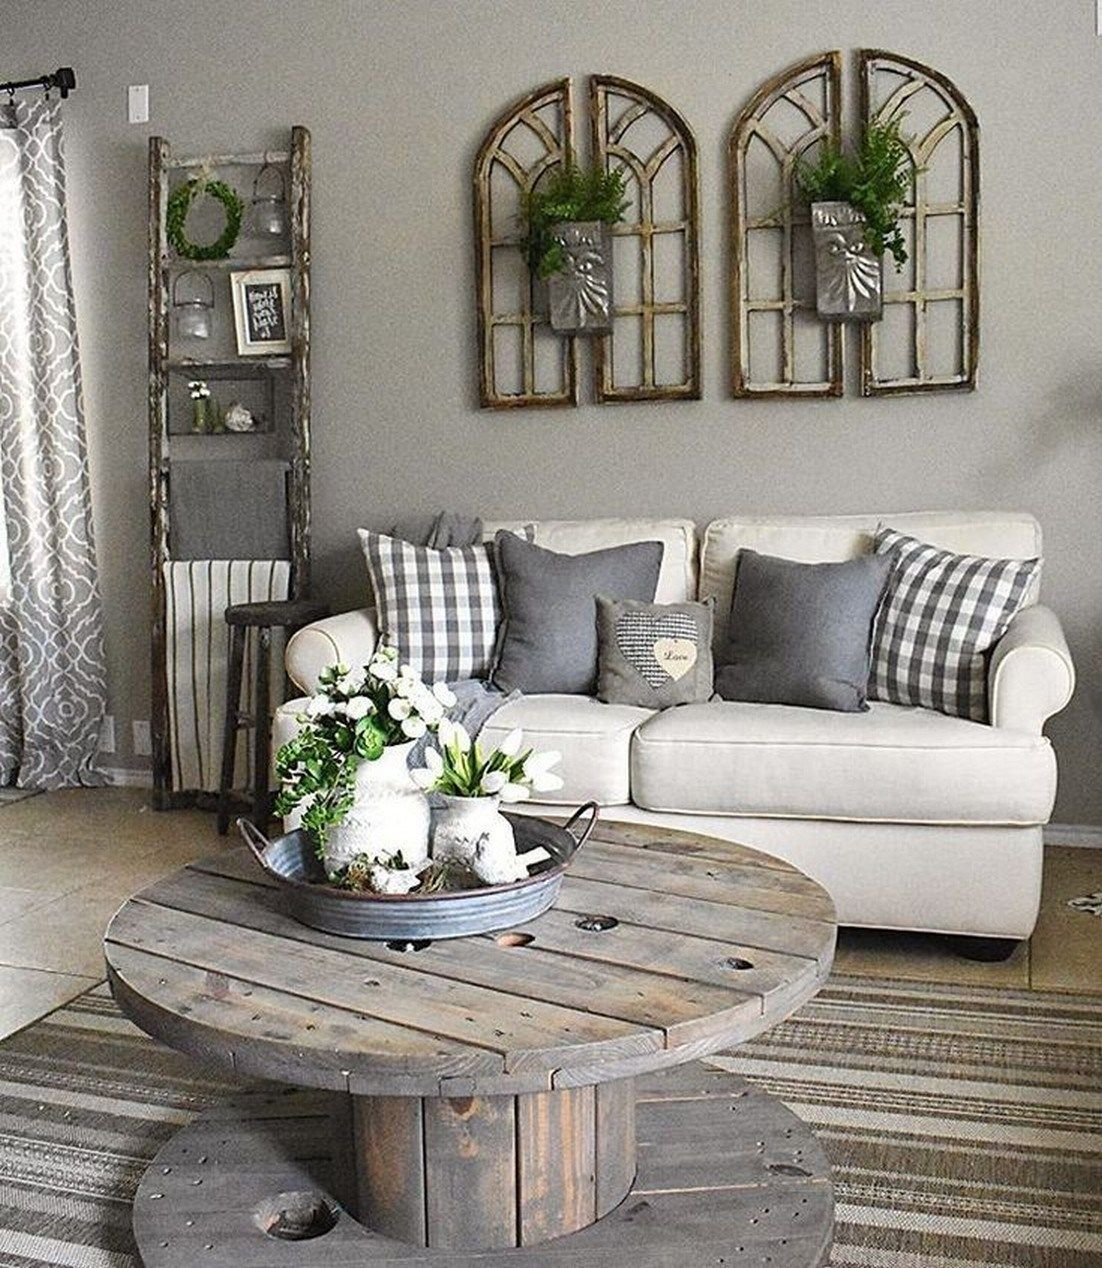 Top 11 Incredible Cozy And Rustic Chic Living Room For: √82 Best Modern Farmhouse Home Decor Ideas To Look Amazing